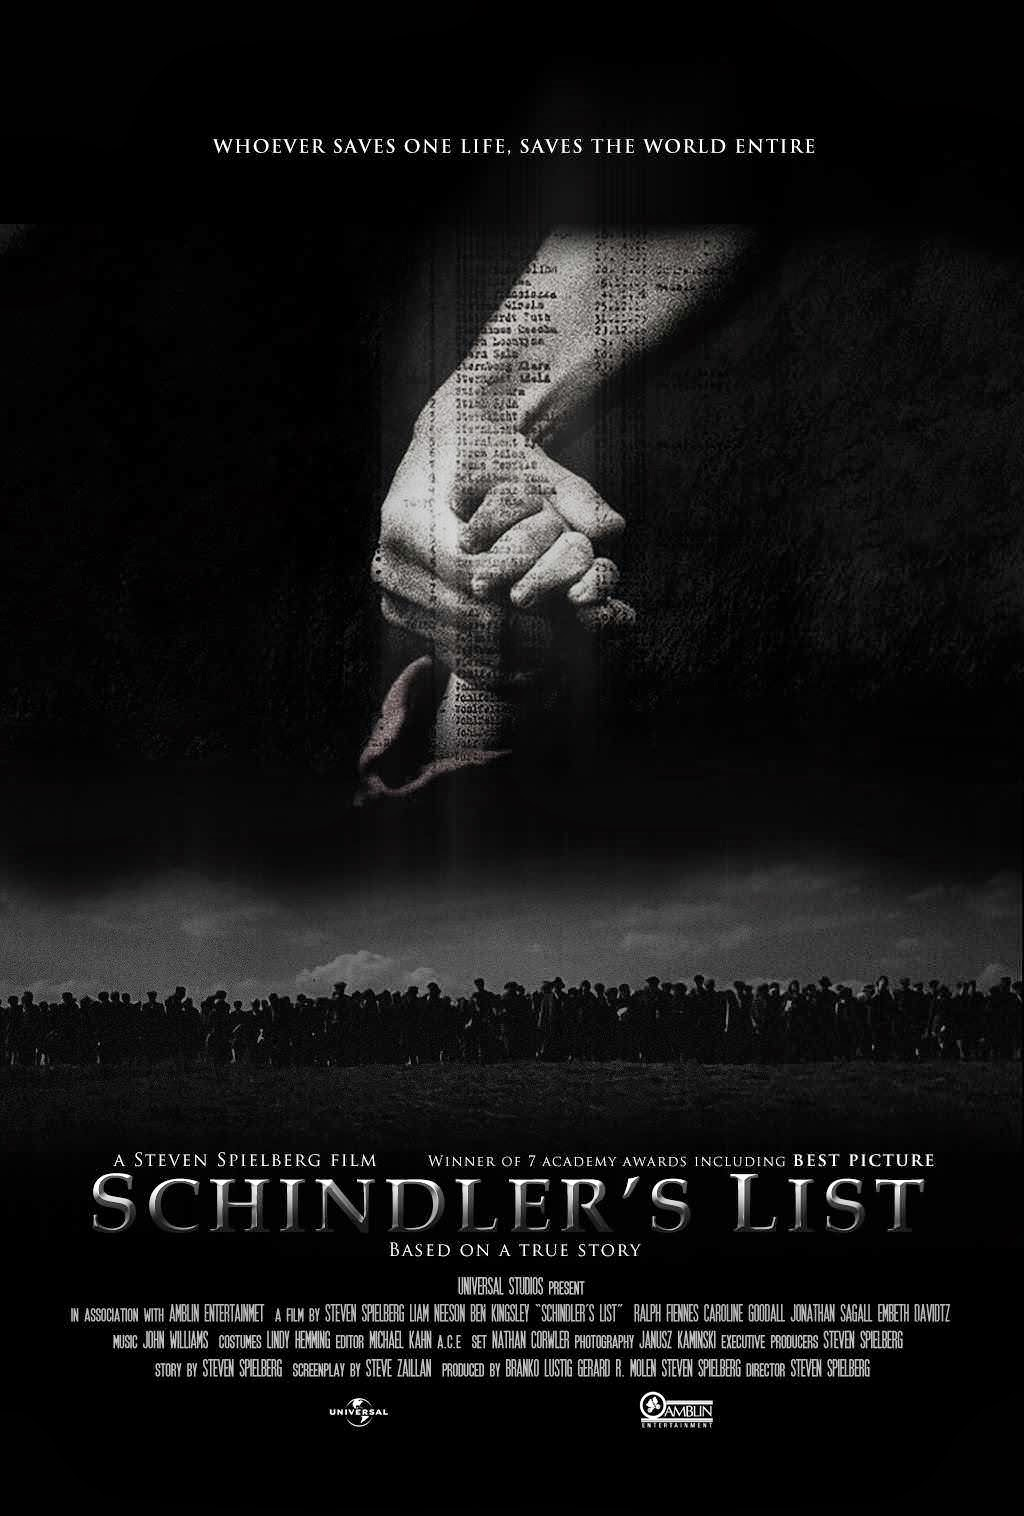 a review of the movie schindlers list by steven spielberg Our video countdown of the top 10 steven spielberg movies of all time continues with a discussion of the #6 movie on our list, schindler's list.